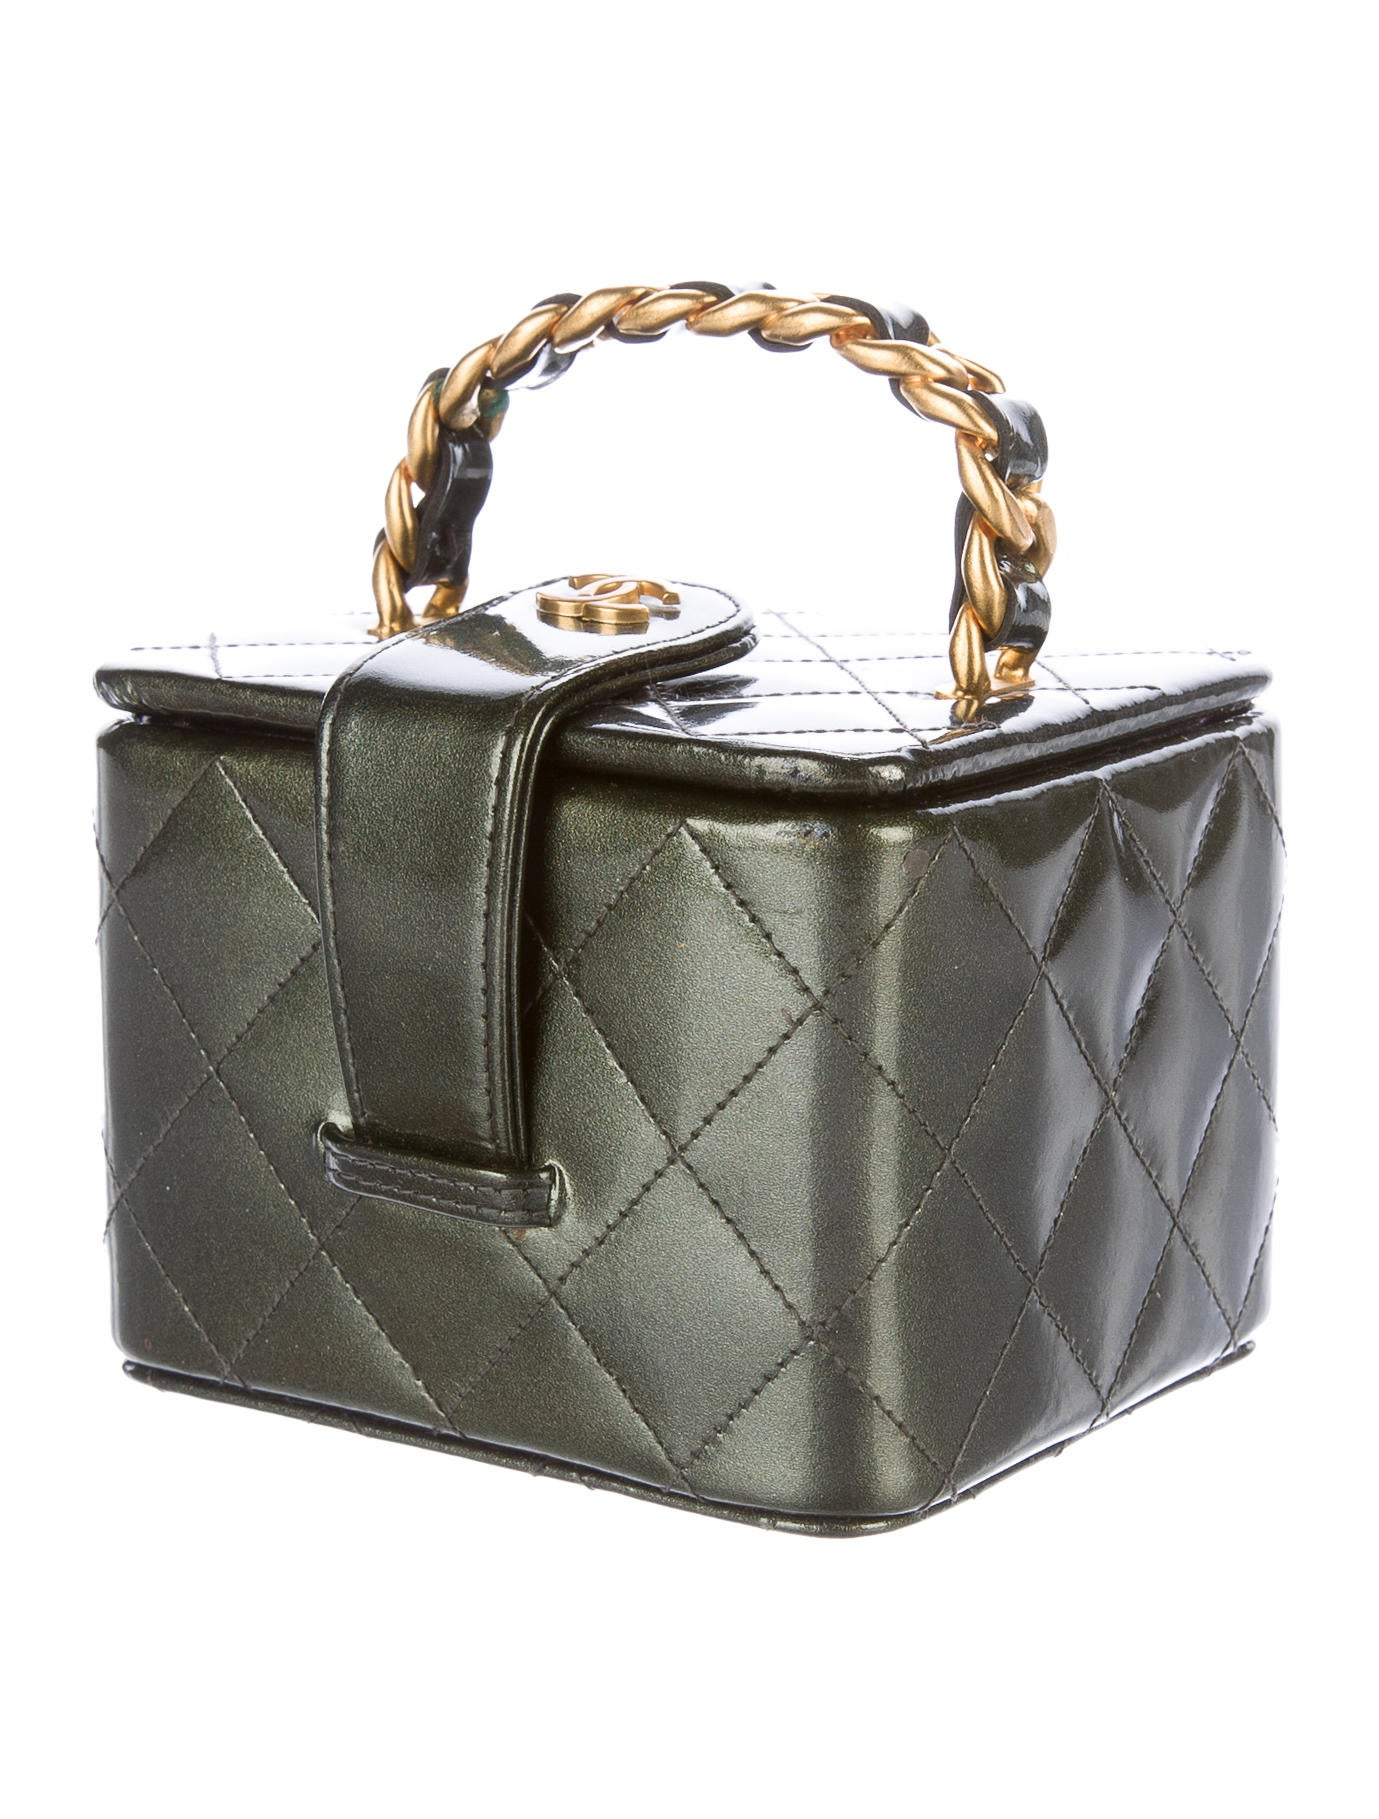 Chanel Patent Vanity Case - Accessories - CHA162835 | The ...